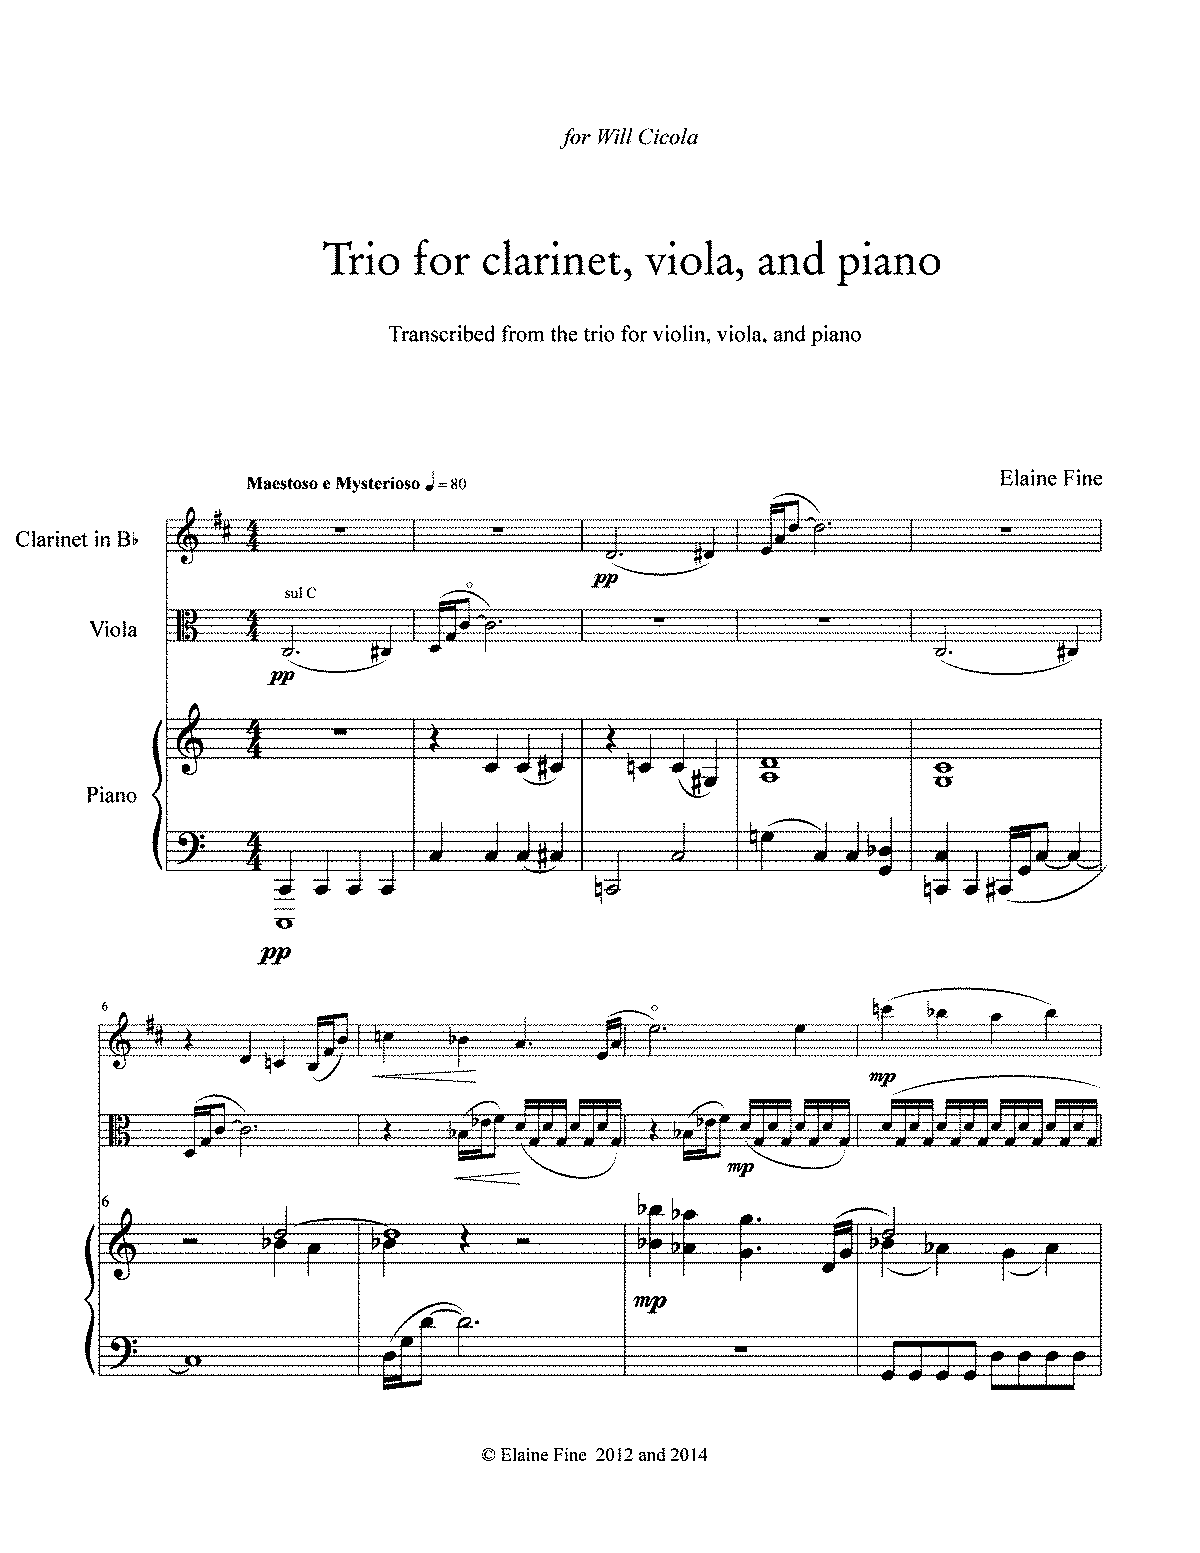 PMLP417763-Trio for Clarinet, Viola, and Piano Score and Parts.pdf